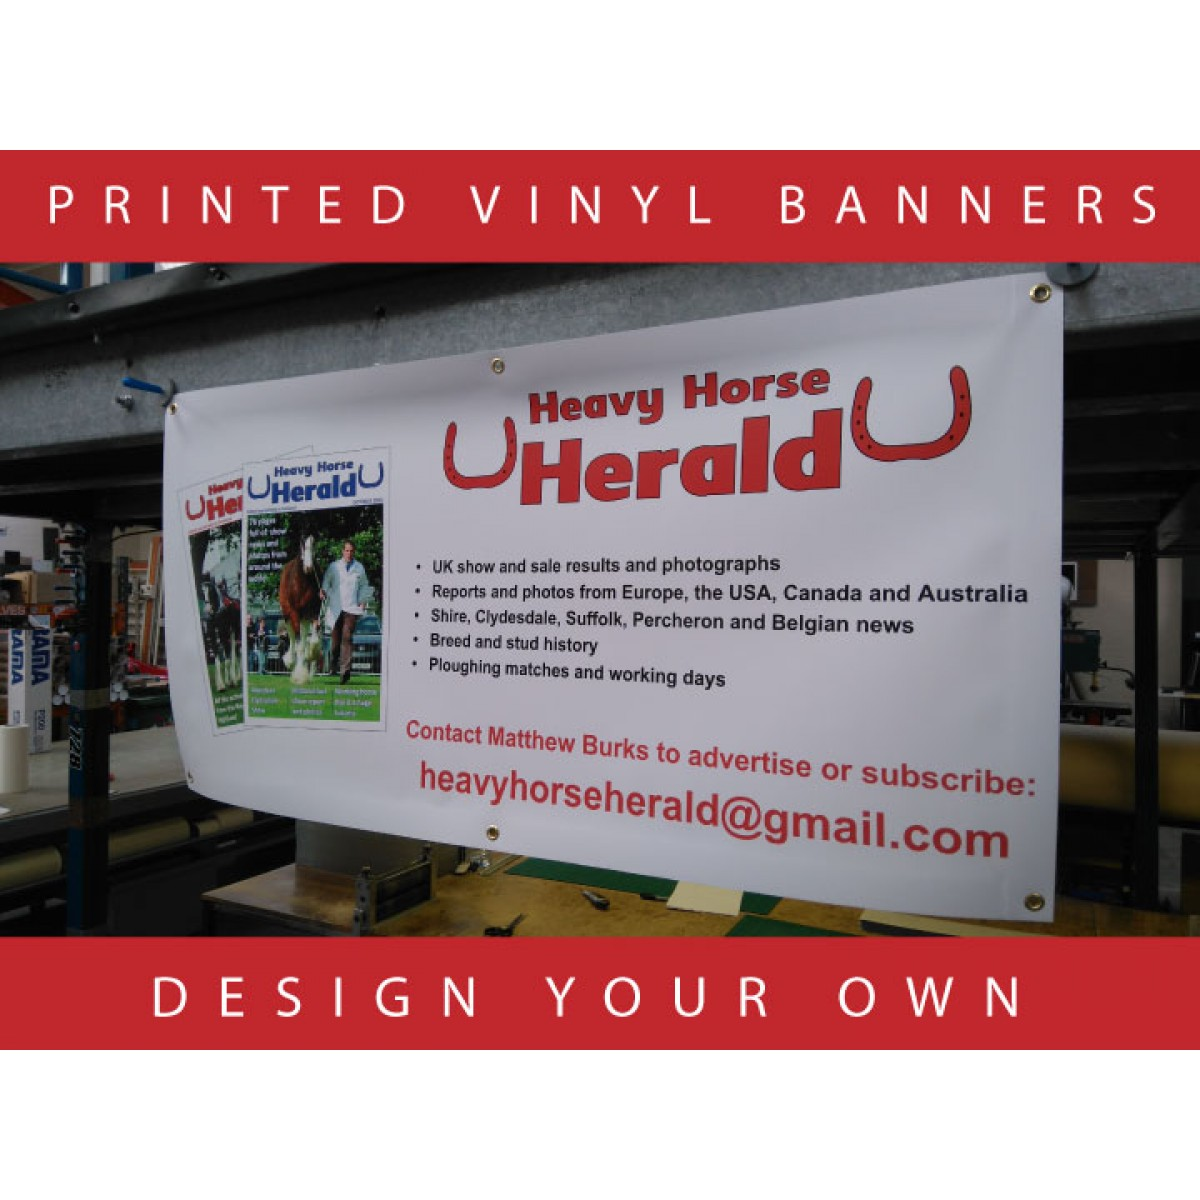 Printed Vinyl Banners Design Your Own The Sign Designer - Vinyl banners australia